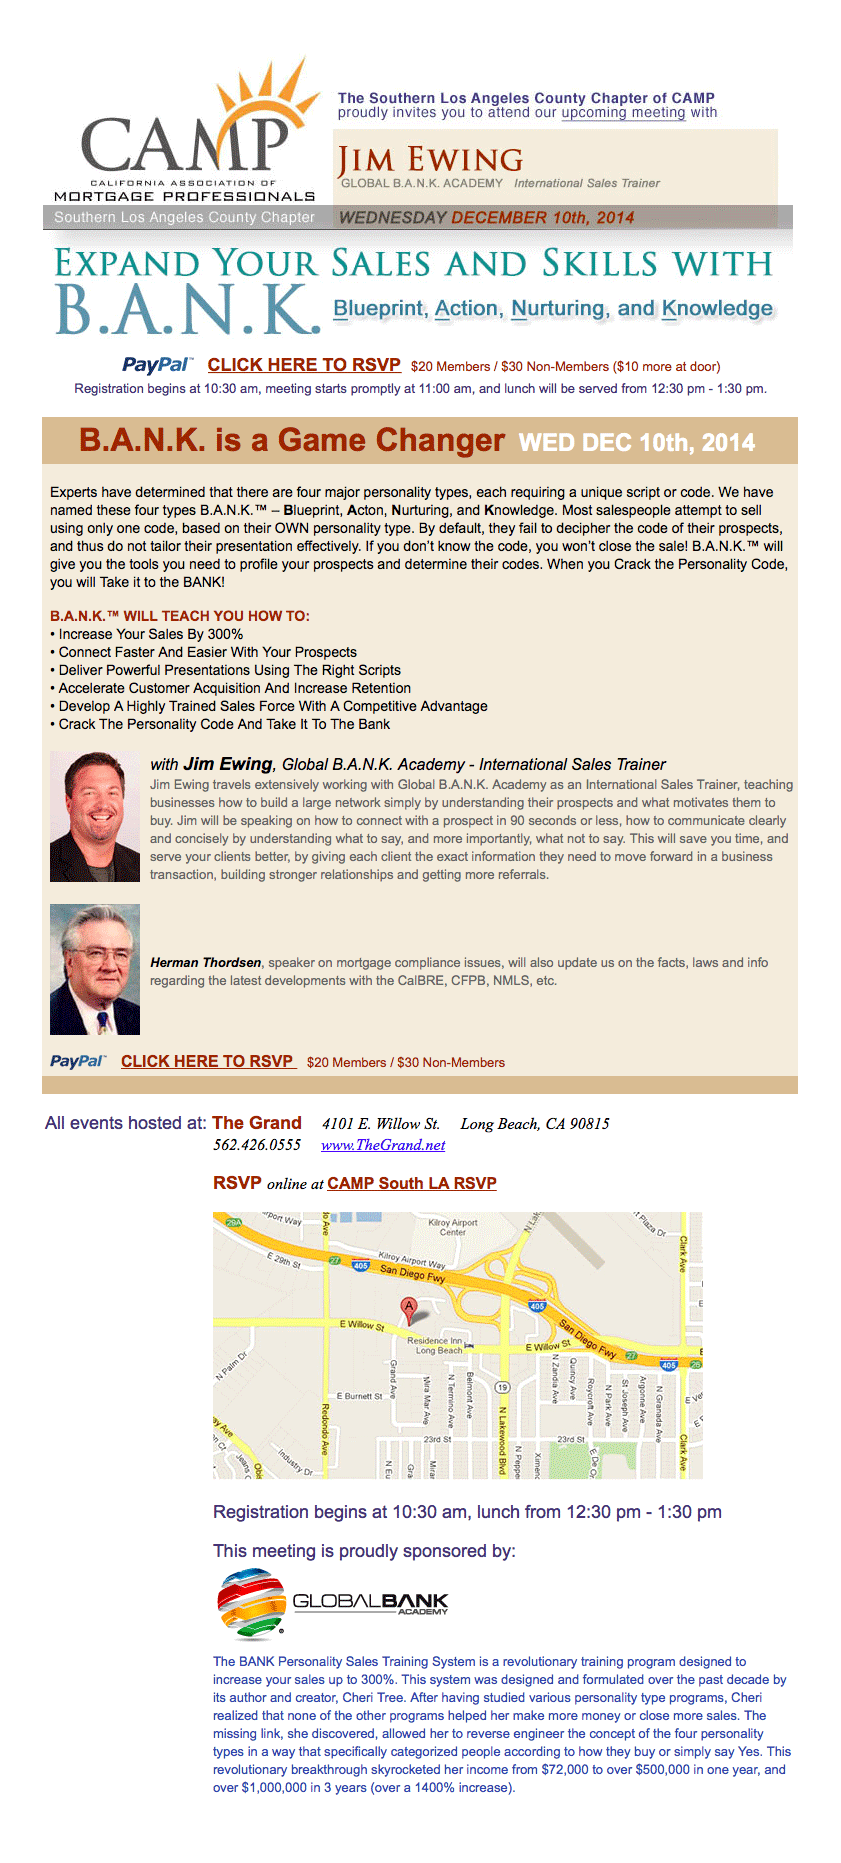 , CAMP Luncheon: Expand Your Sales and Skills with B.A.N.K., Standard Mortgage Financial Services, Inc.